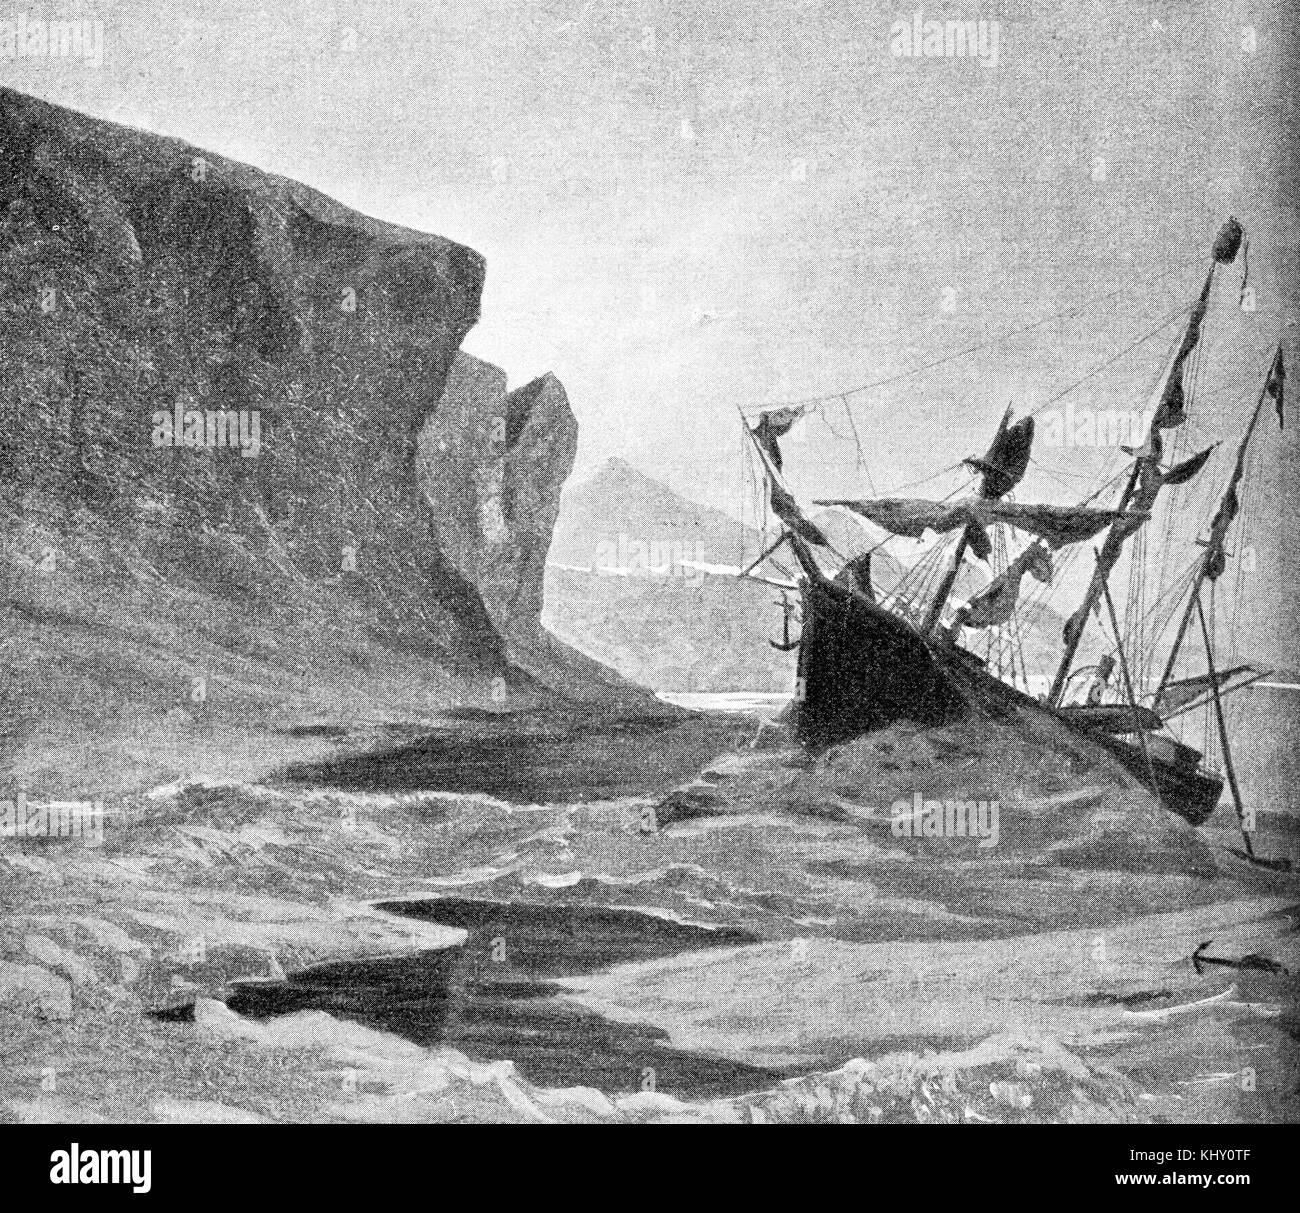 Vintage engraving of Austro-Hungarian North Pole expedition: the three-masted schooner Tegetthoff trapped in ice - Stock Image